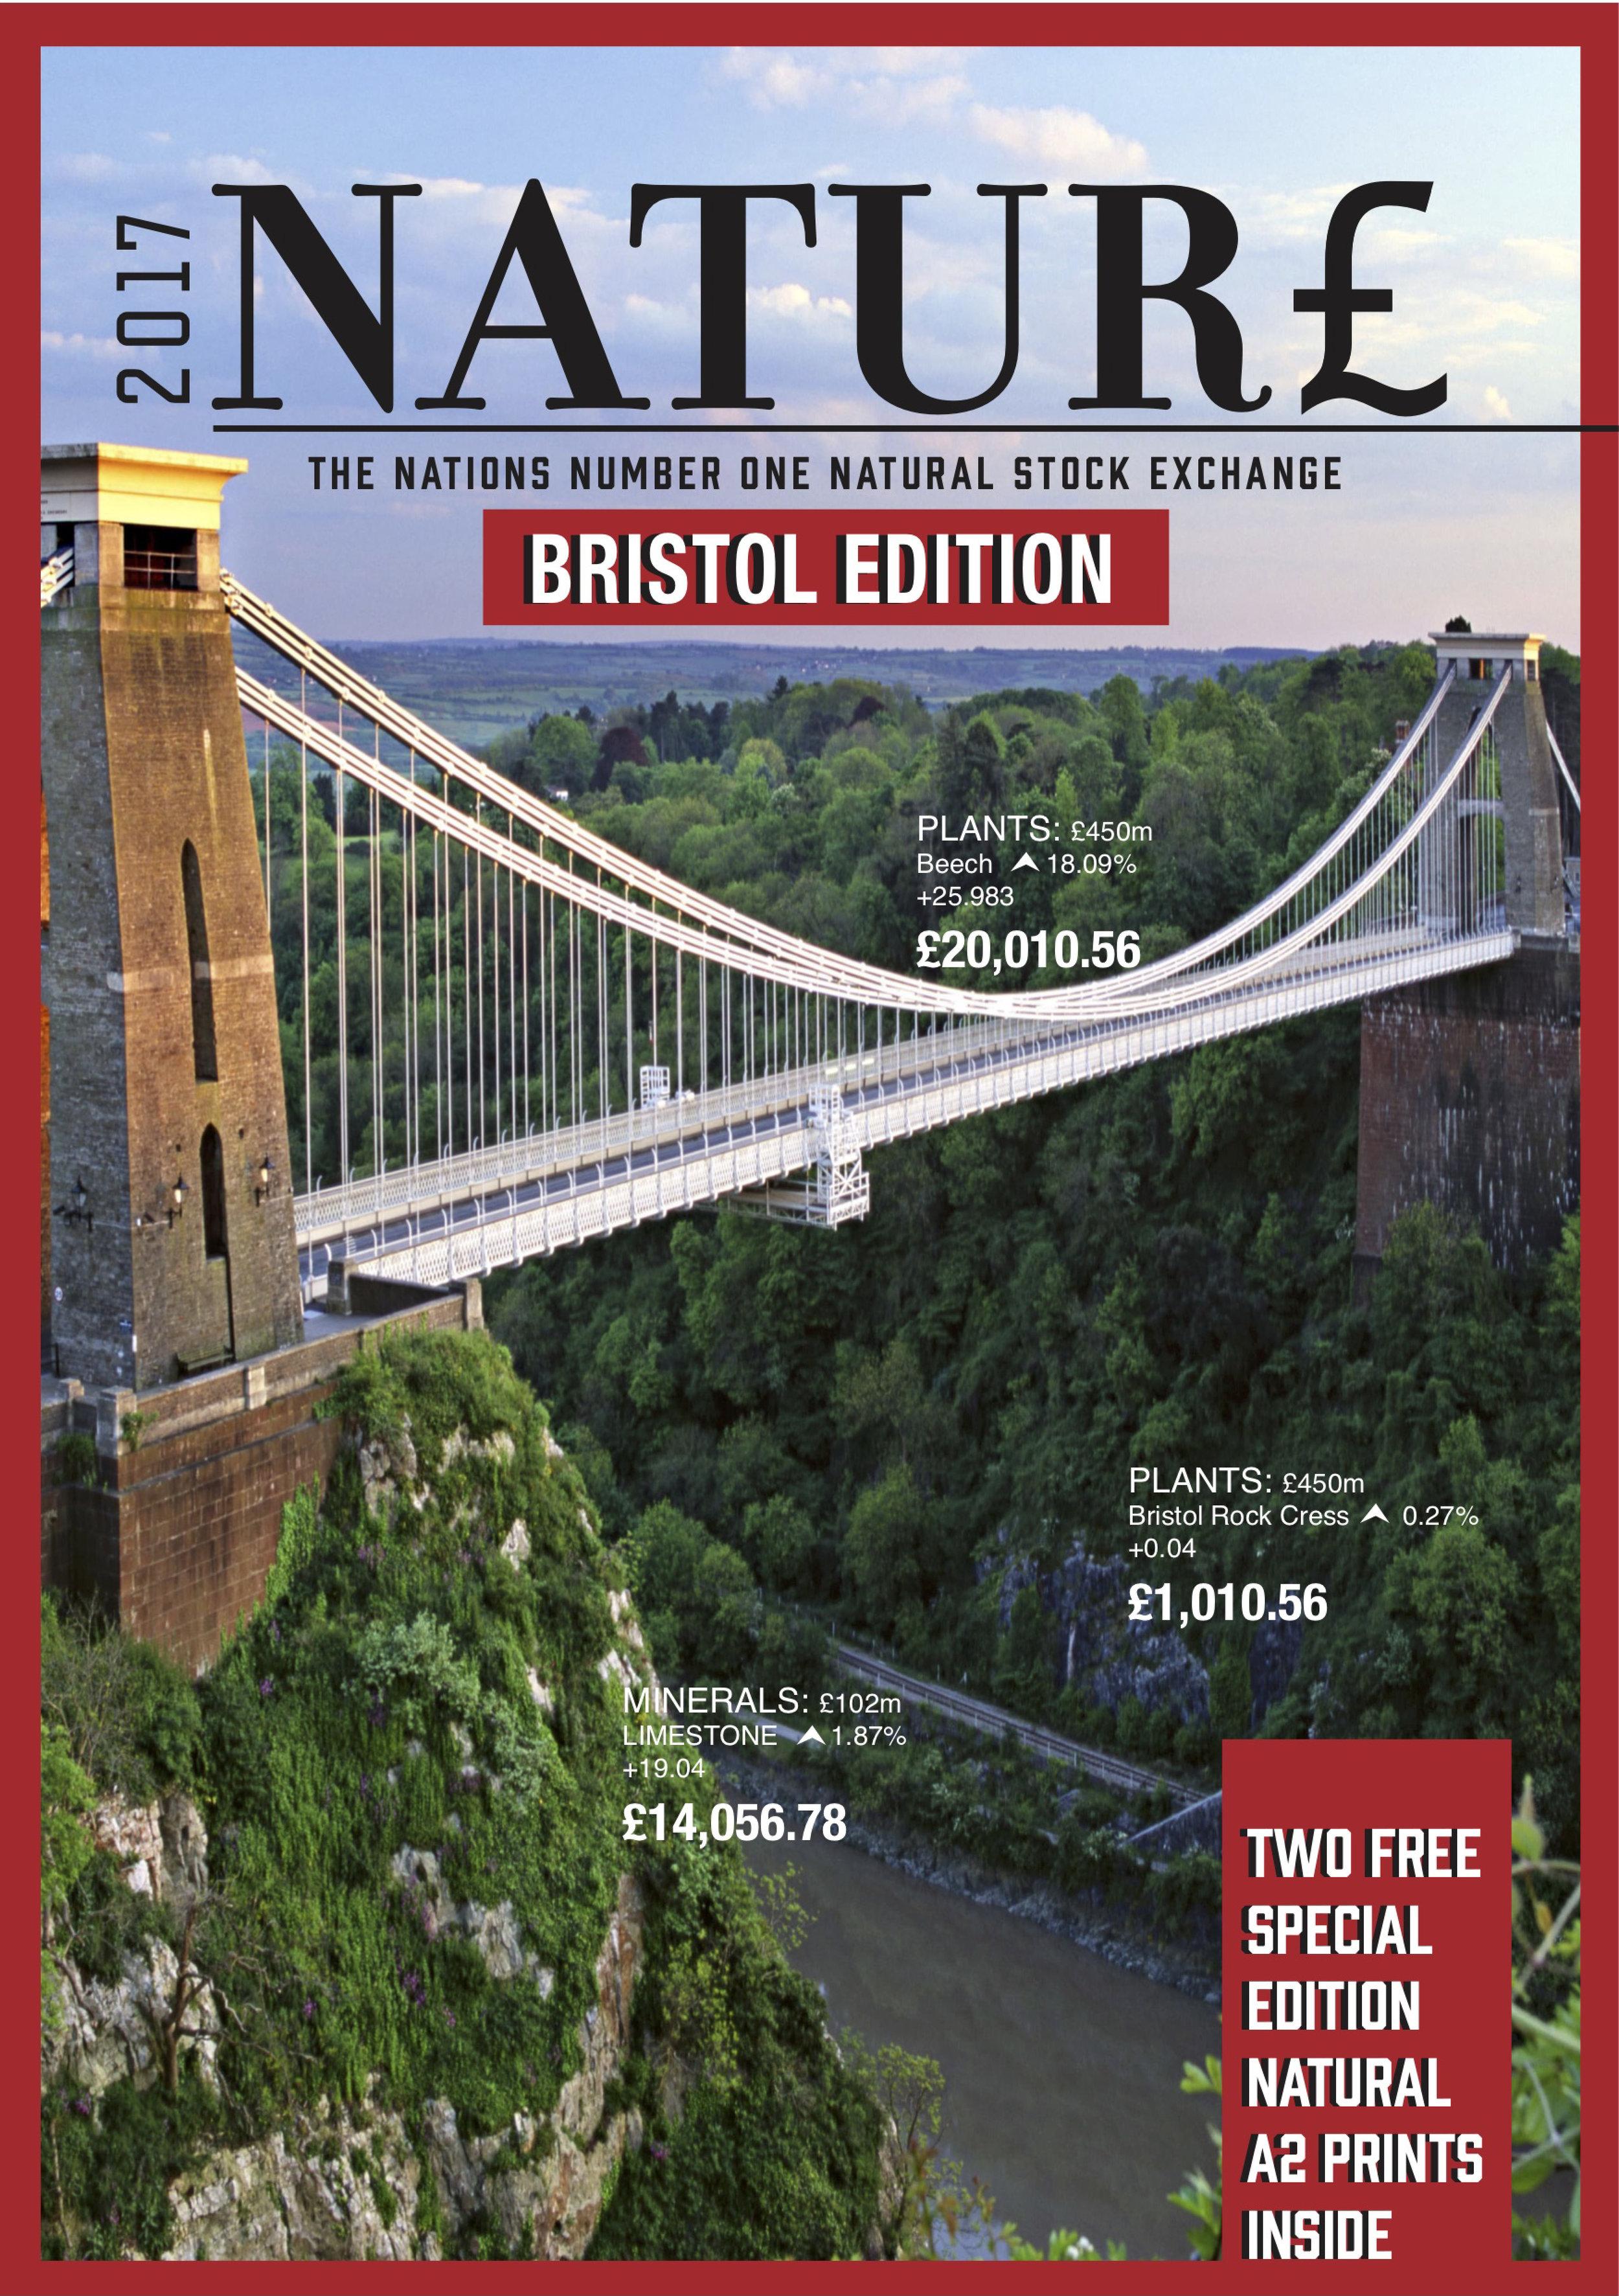 Natur£ - Publication